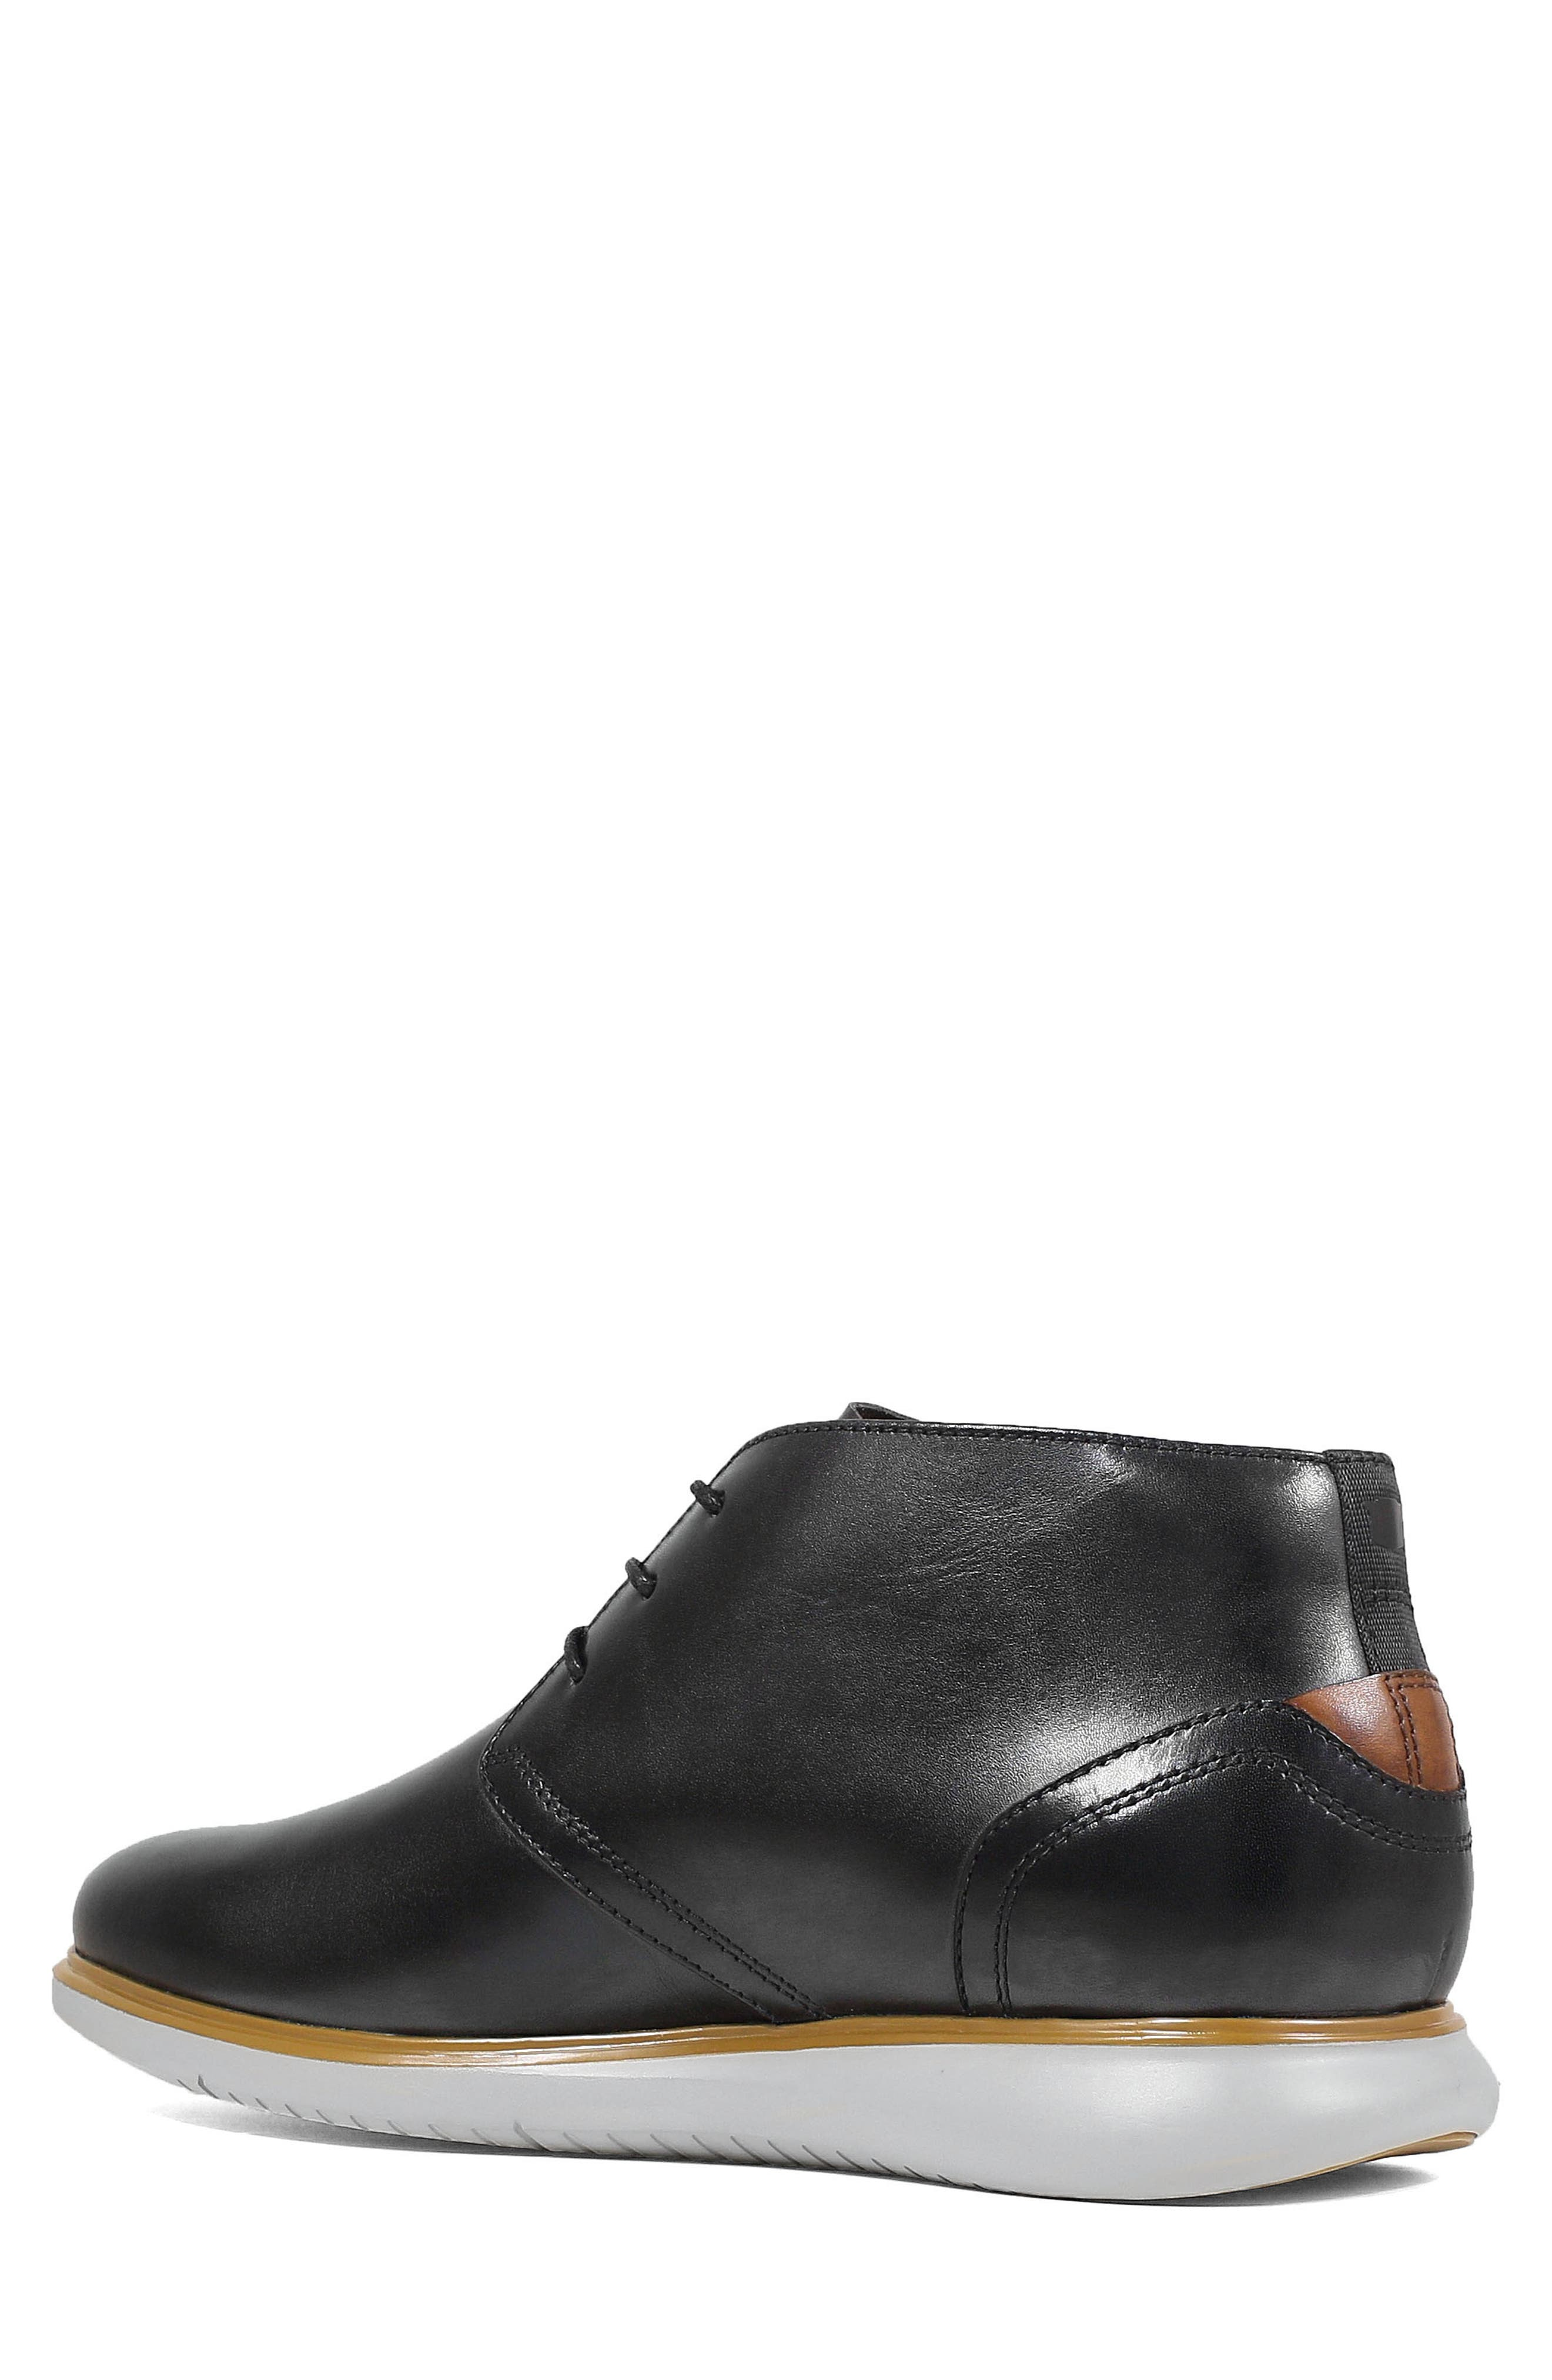 FLORSHEIM,                             Fuel Chukka Boot,                             Alternate thumbnail 2, color,                             BLACK LEATHER